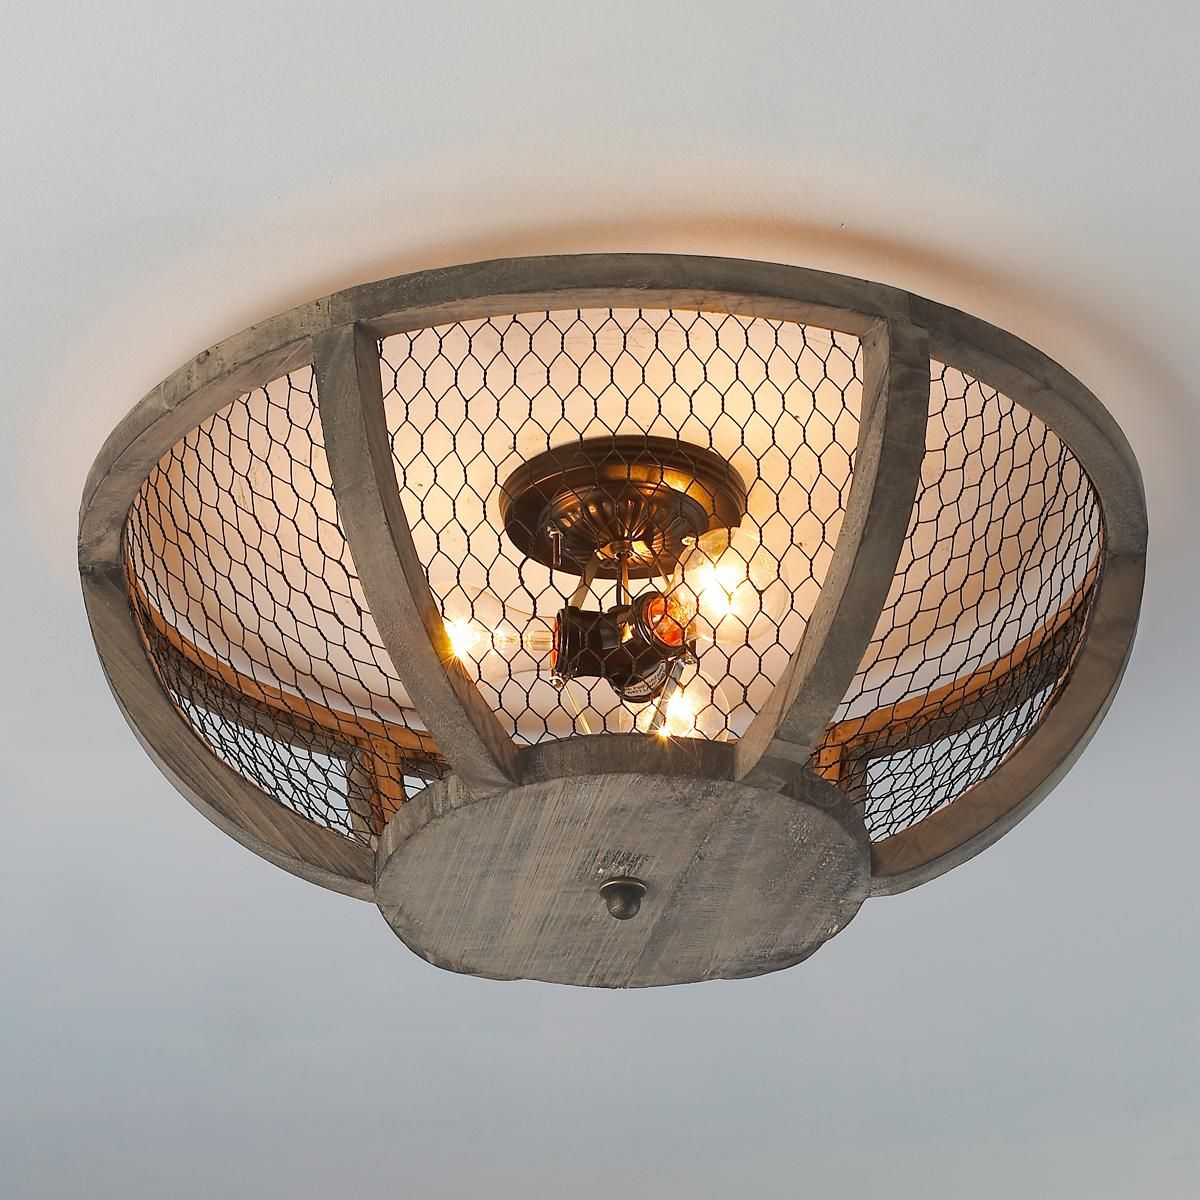 Chicken wire basket ceiling light small ceiling light